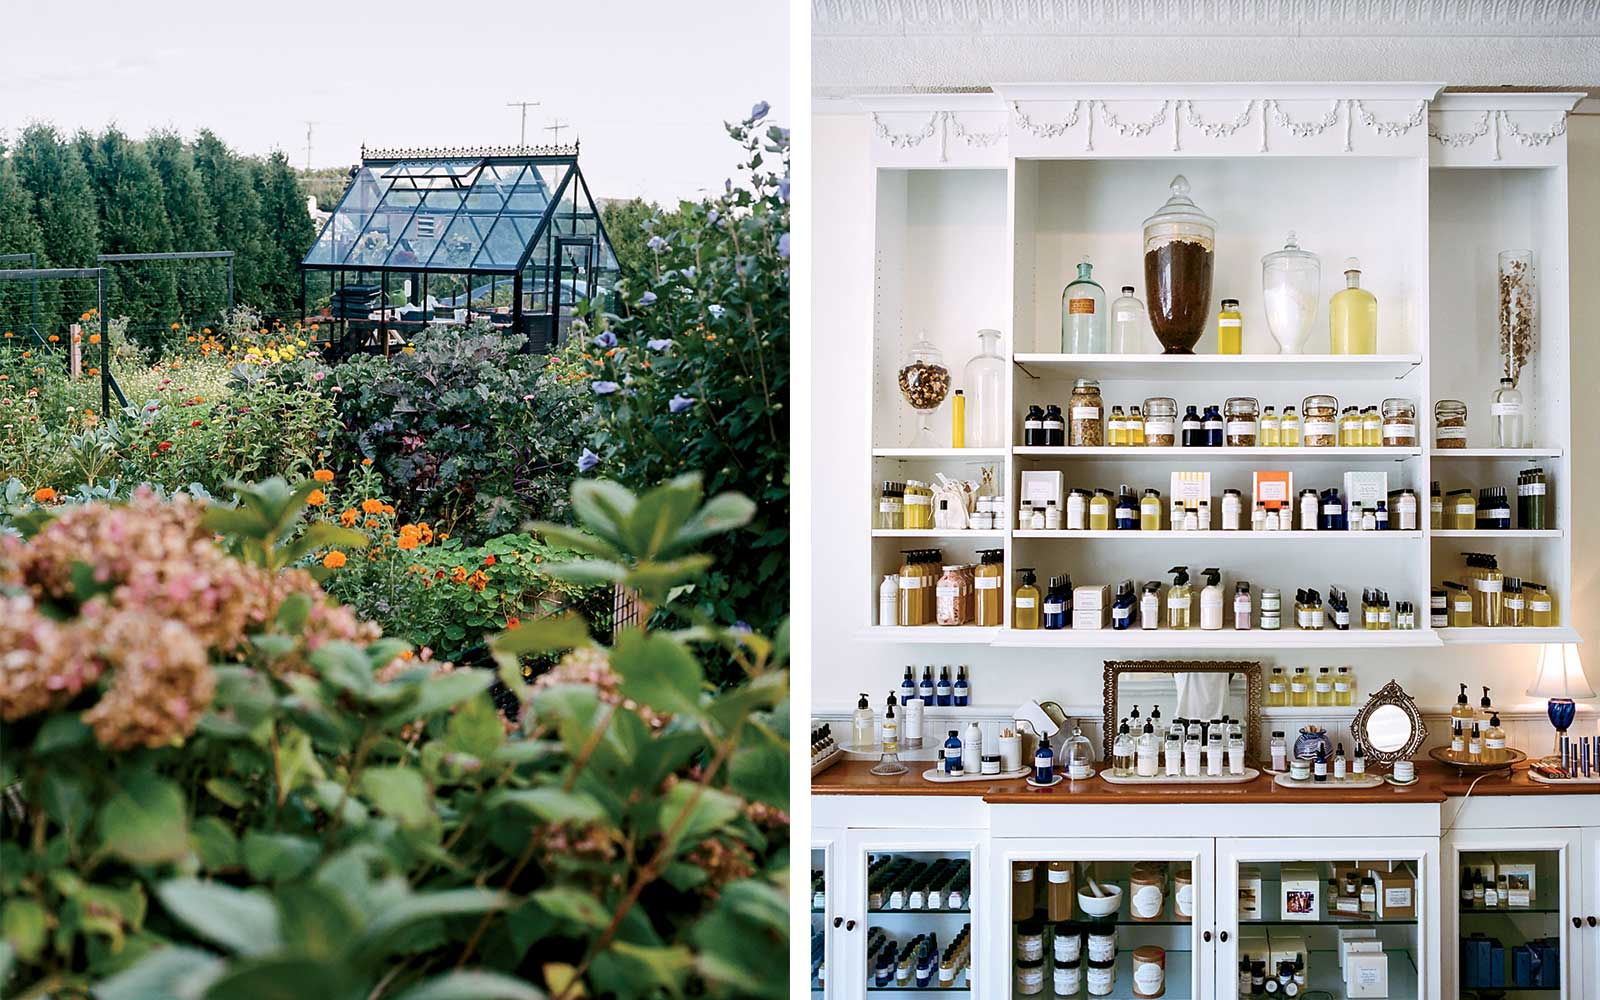 Castle Hill Inn greenhouse, and a beauty products shop, in Newport, Rhode Island.